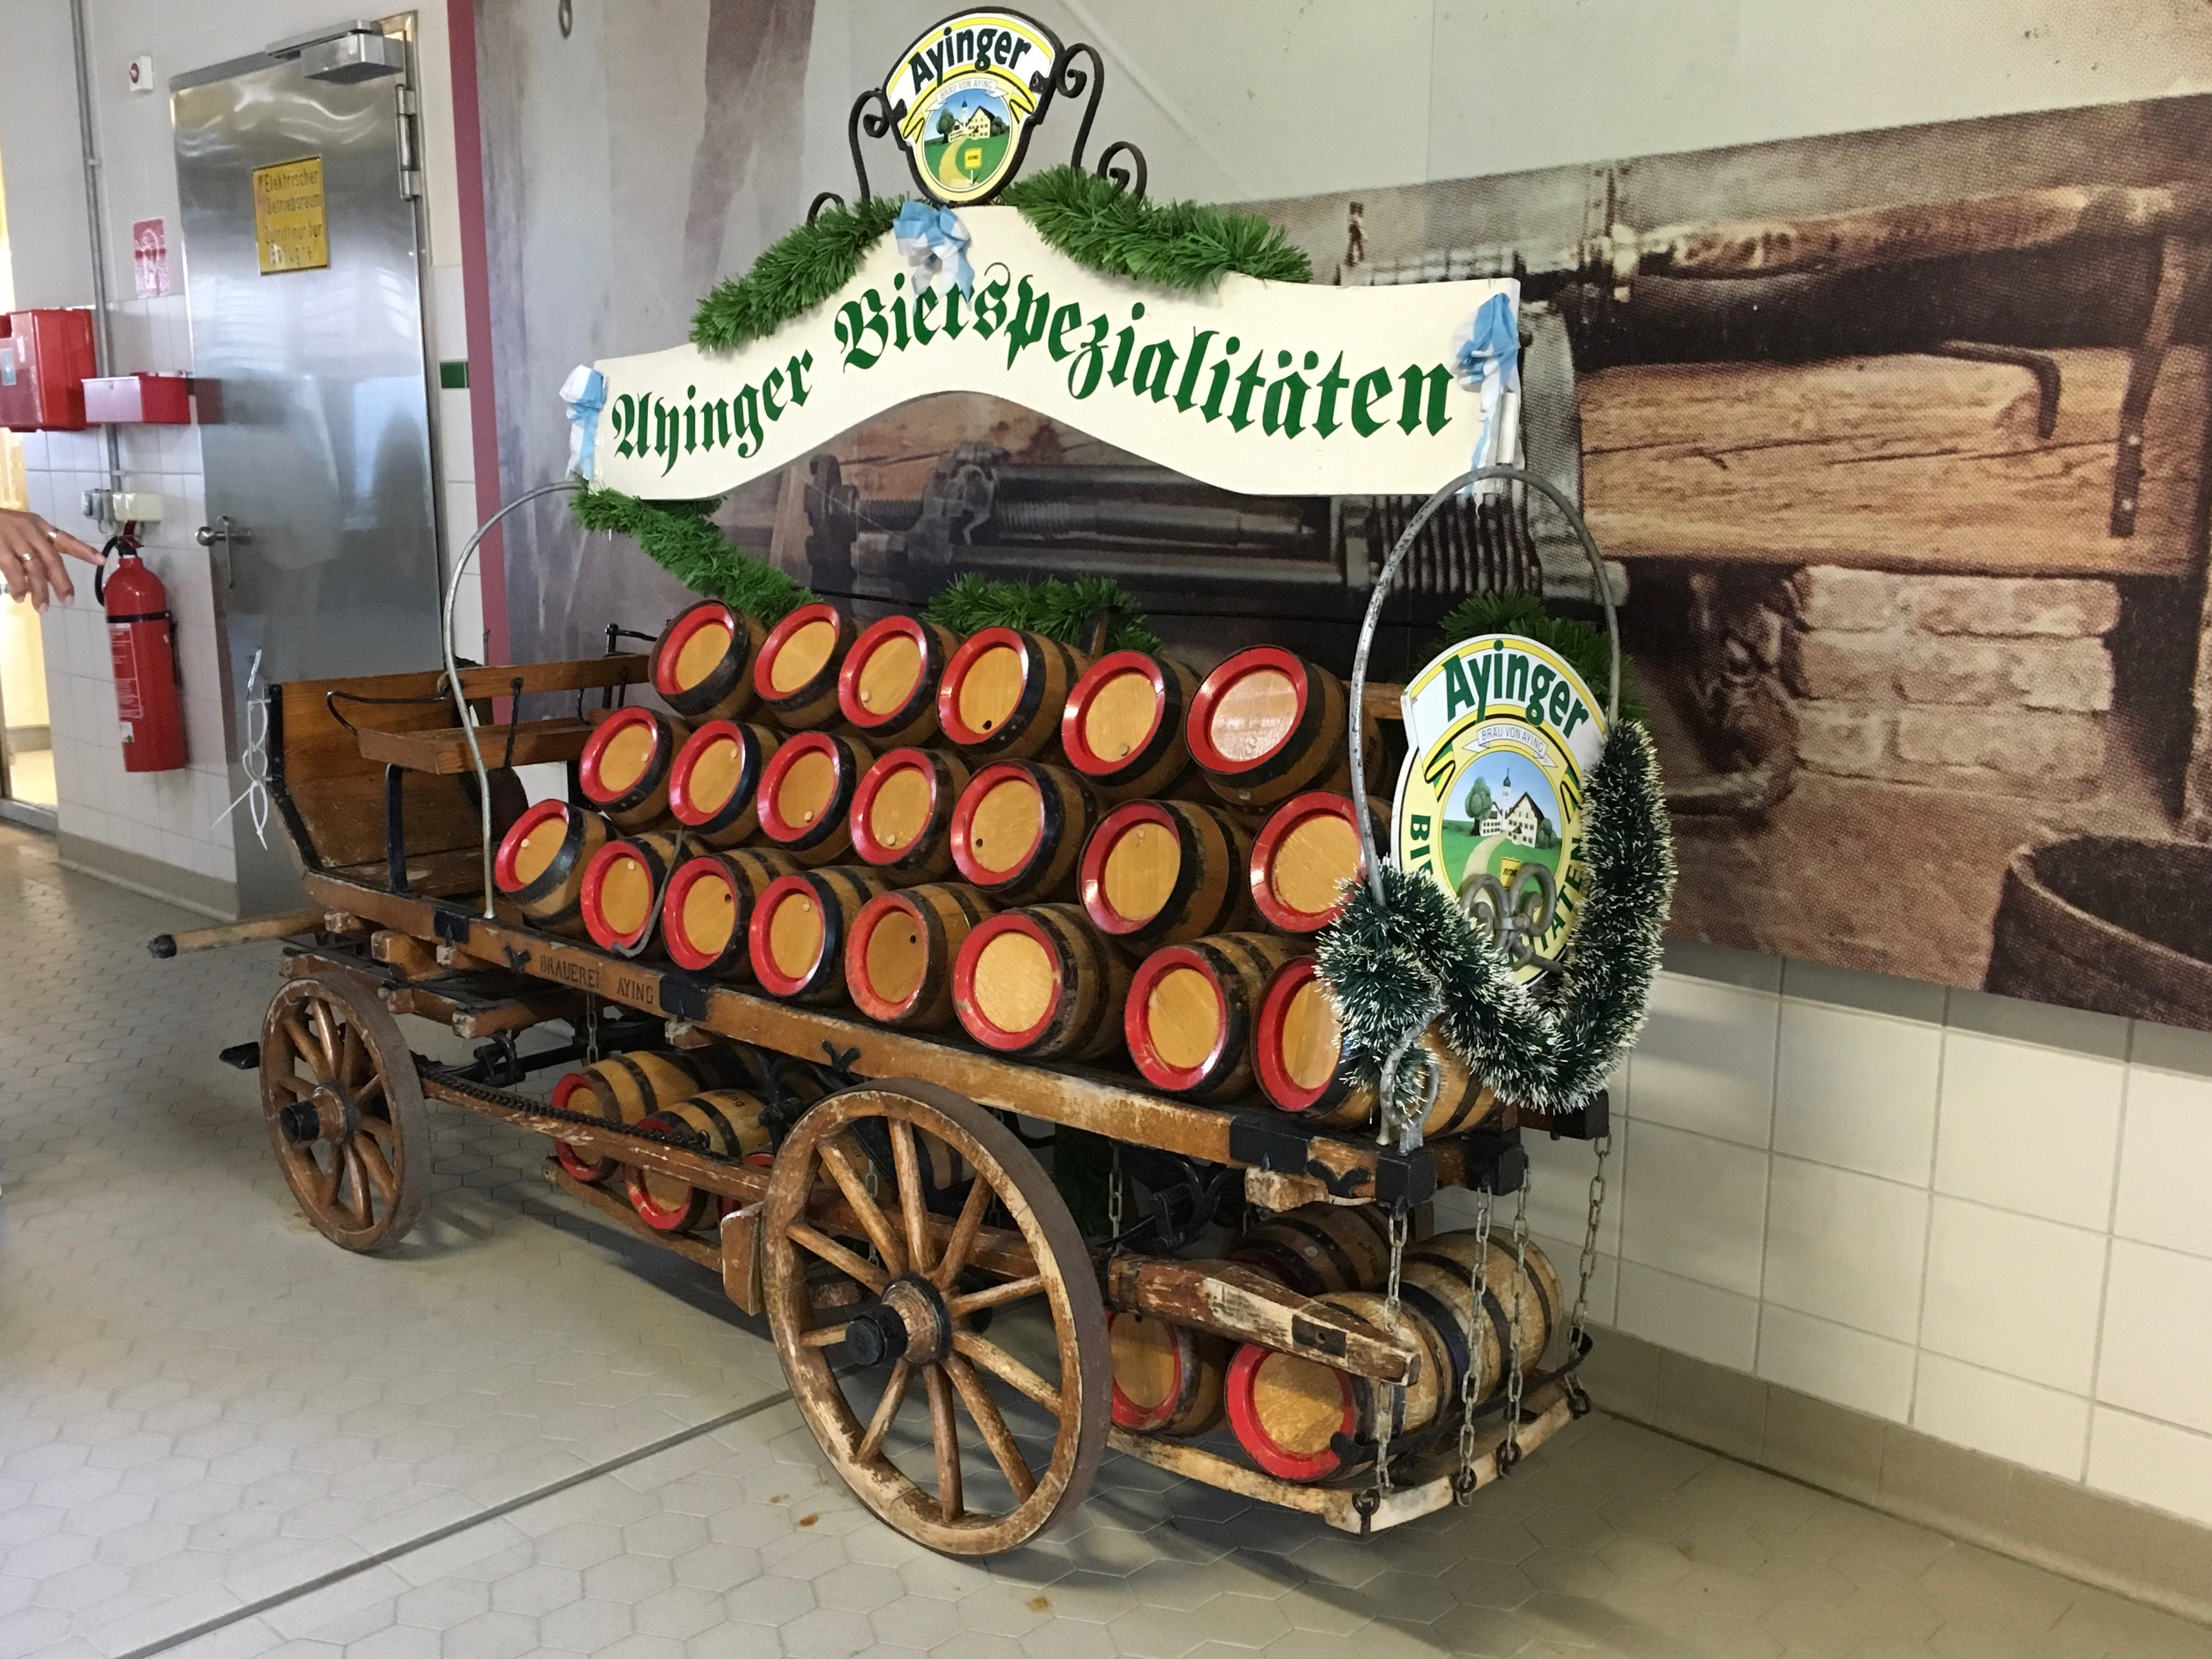 Festive beer trailer inside the Ayinger Brewery.